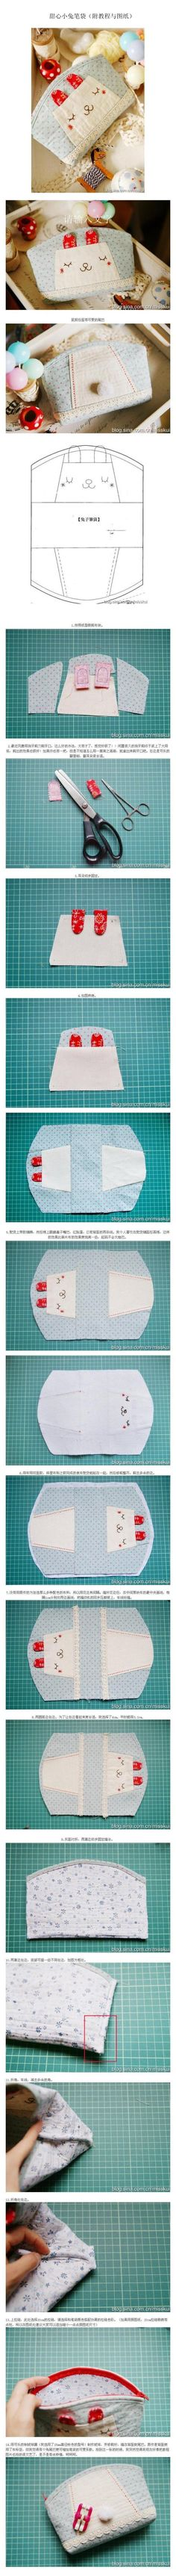 Bunny Pouch - Free Photo Sewing Tutorial